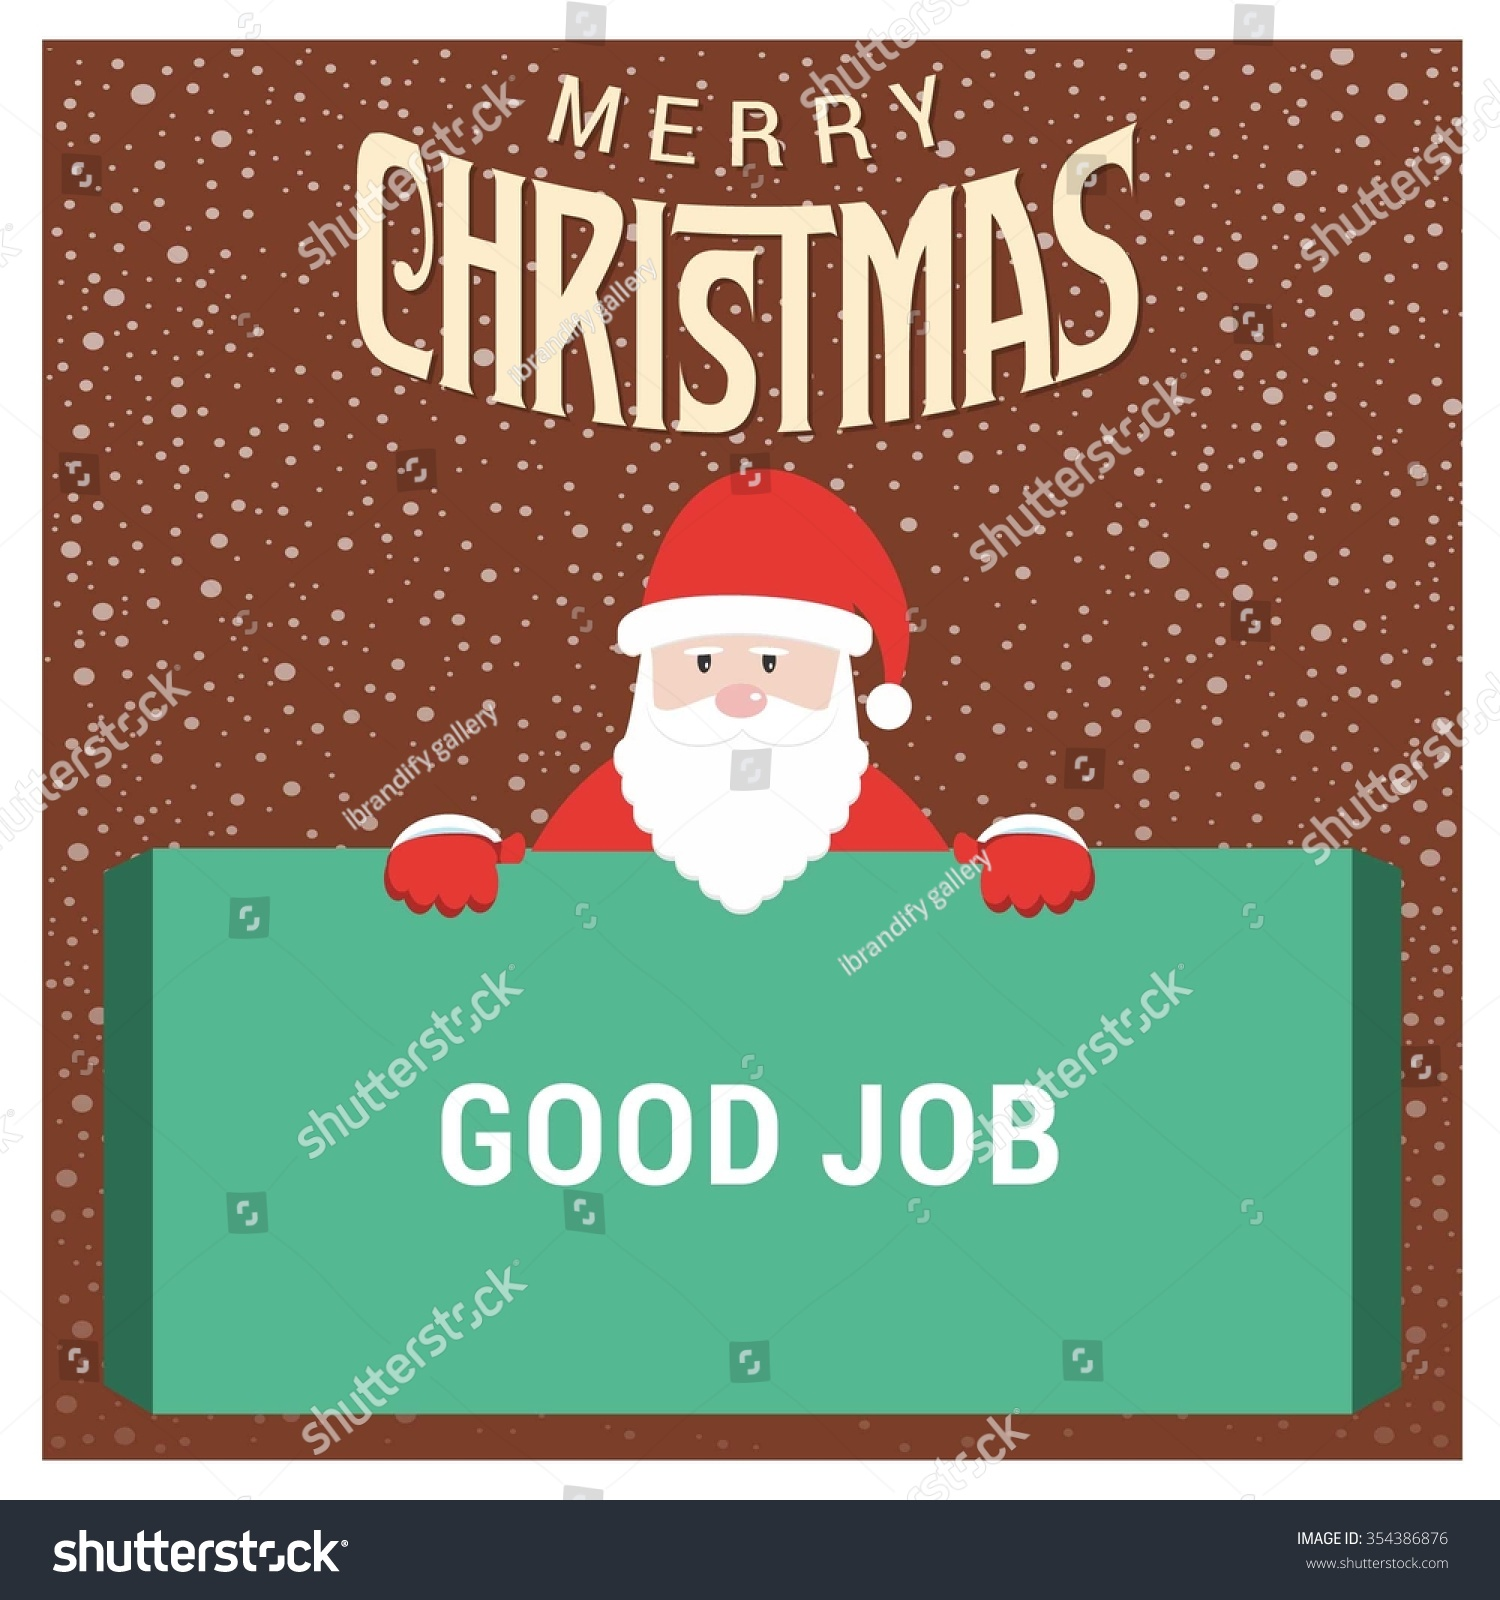 santa claus cartoon character holding board stock vector  santa claus cartoon character holding board good job typography on glowing background merry christmas